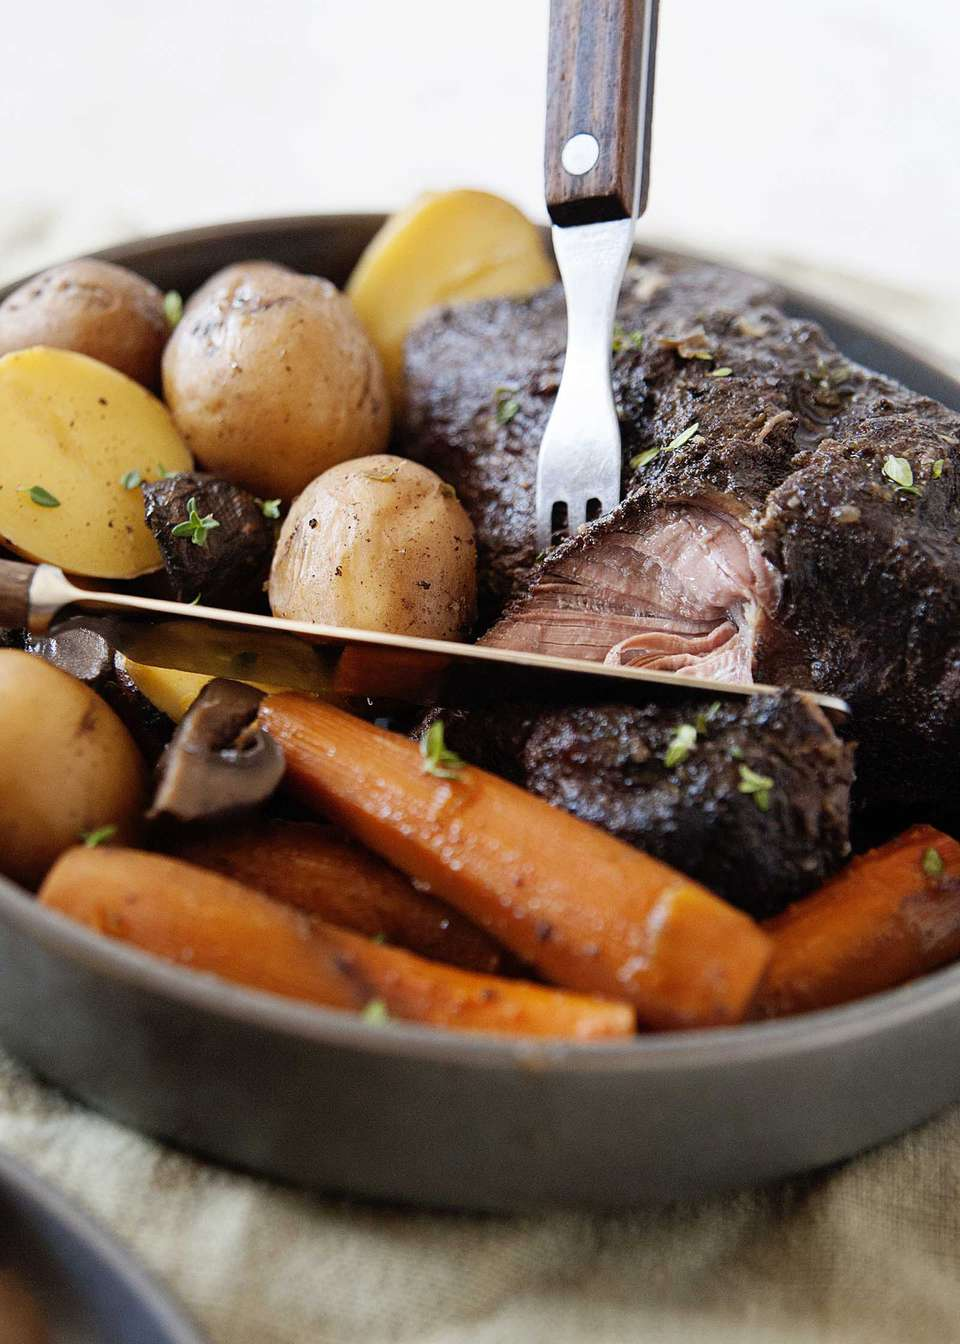 Close up of tender crock pot roast made in a slow cooker with gracy, cooked carrots and potatoes with a fork and knife.